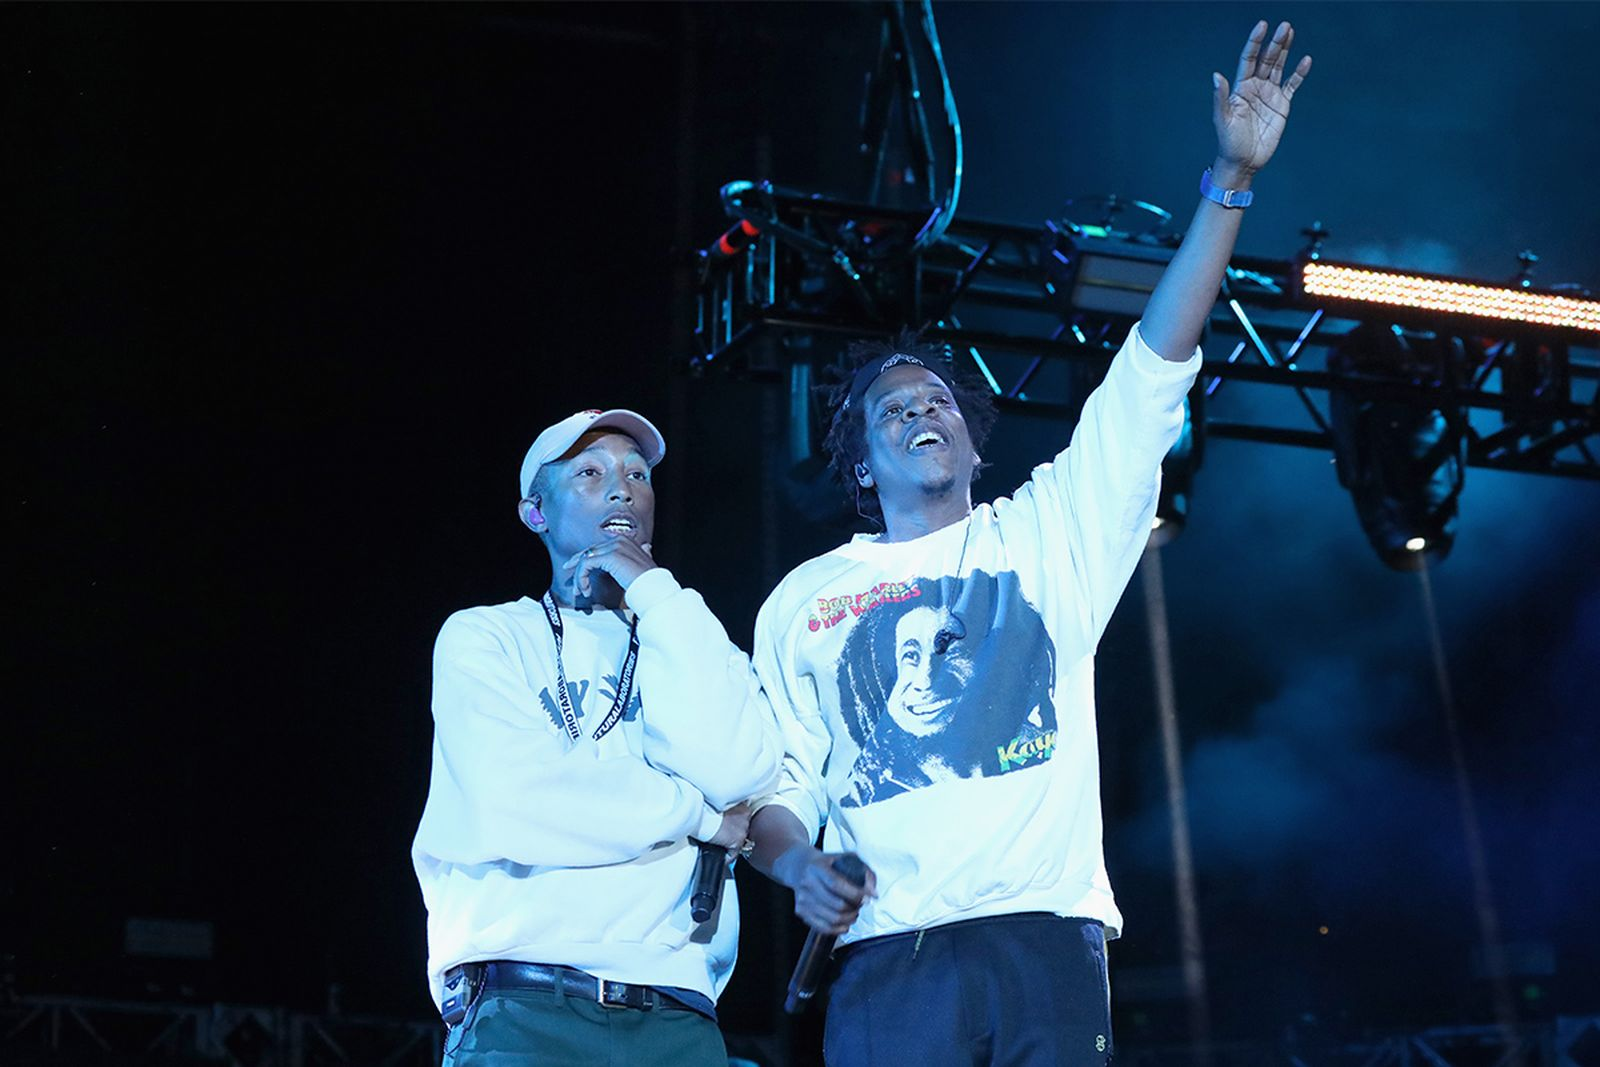 pharrell jay z sitw Something in the Water Festival Travis Scott diddy